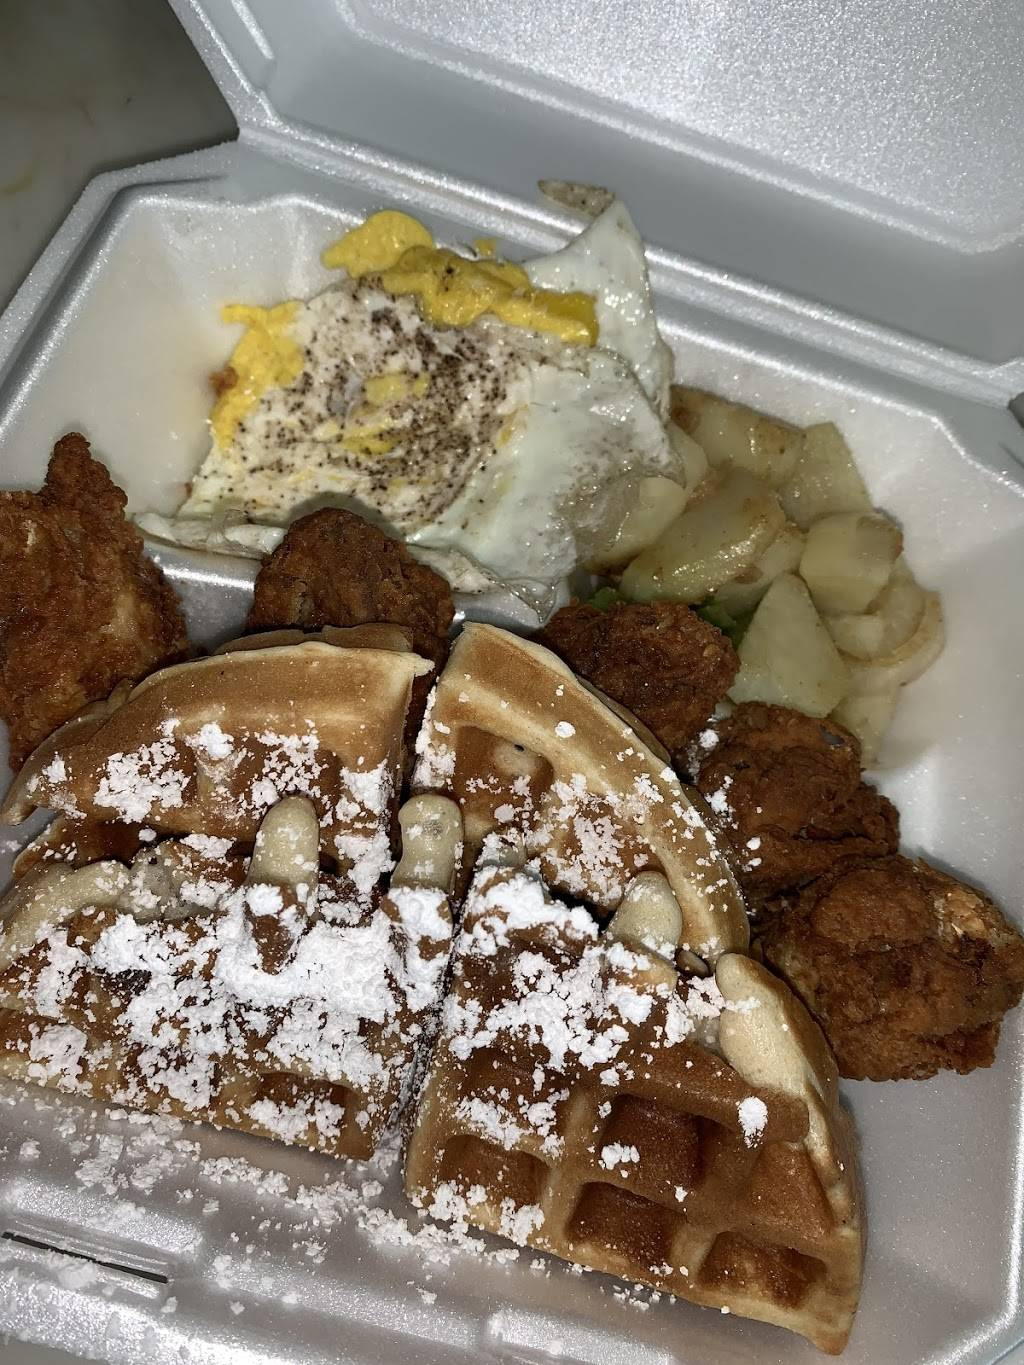 Mon Valley Kitchen | meal takeaway | 495 Taft Ave, West Mifflin, PA 15122, USA | 4128965426 OR +1 412-896-5426